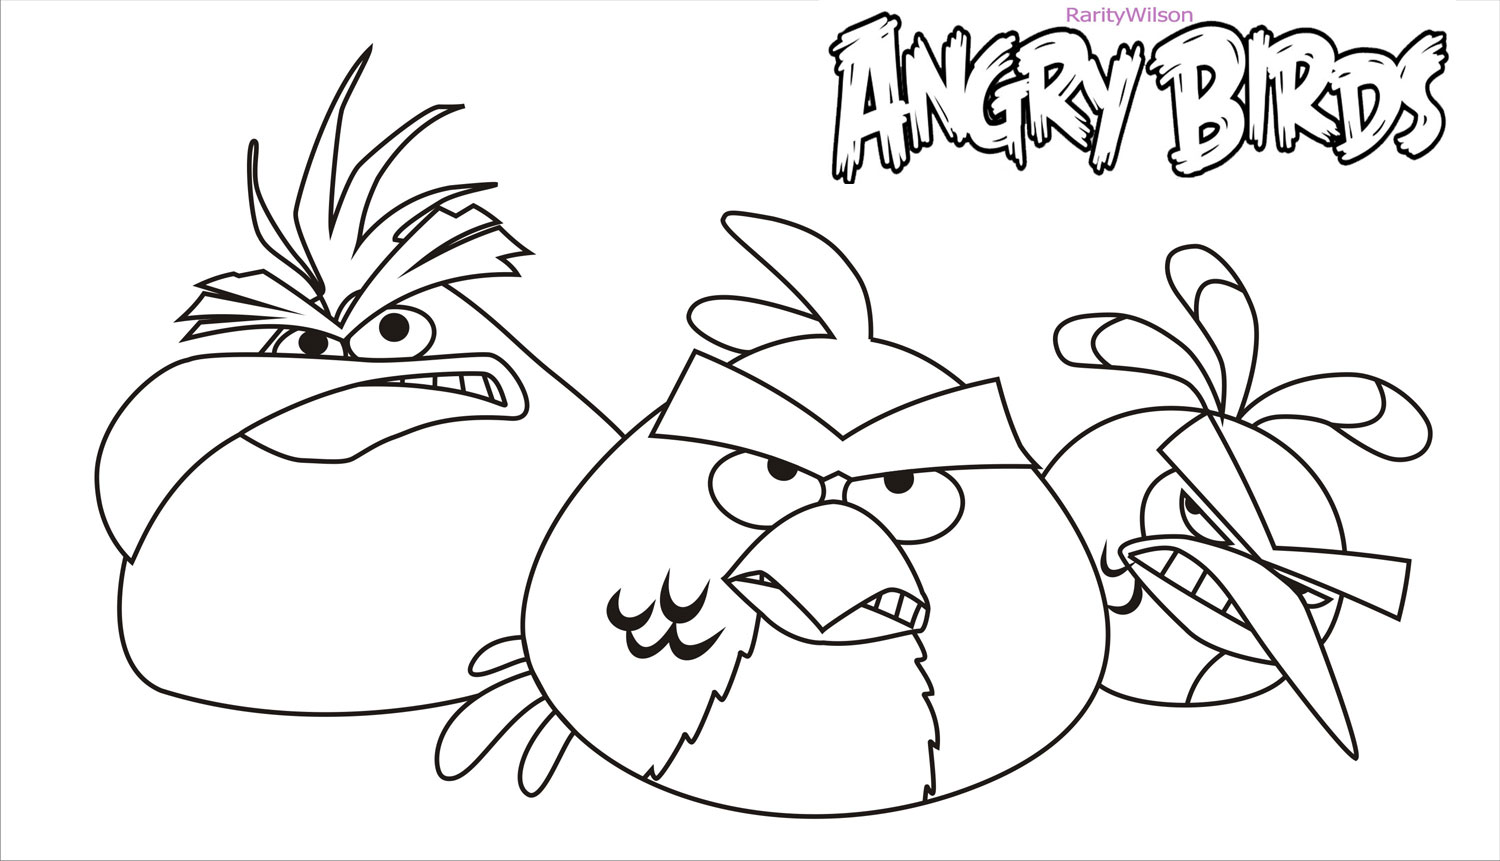 Serious Angry Birds Coloring Pages Free Printable Coloring Pages For Kids Colouring Pages